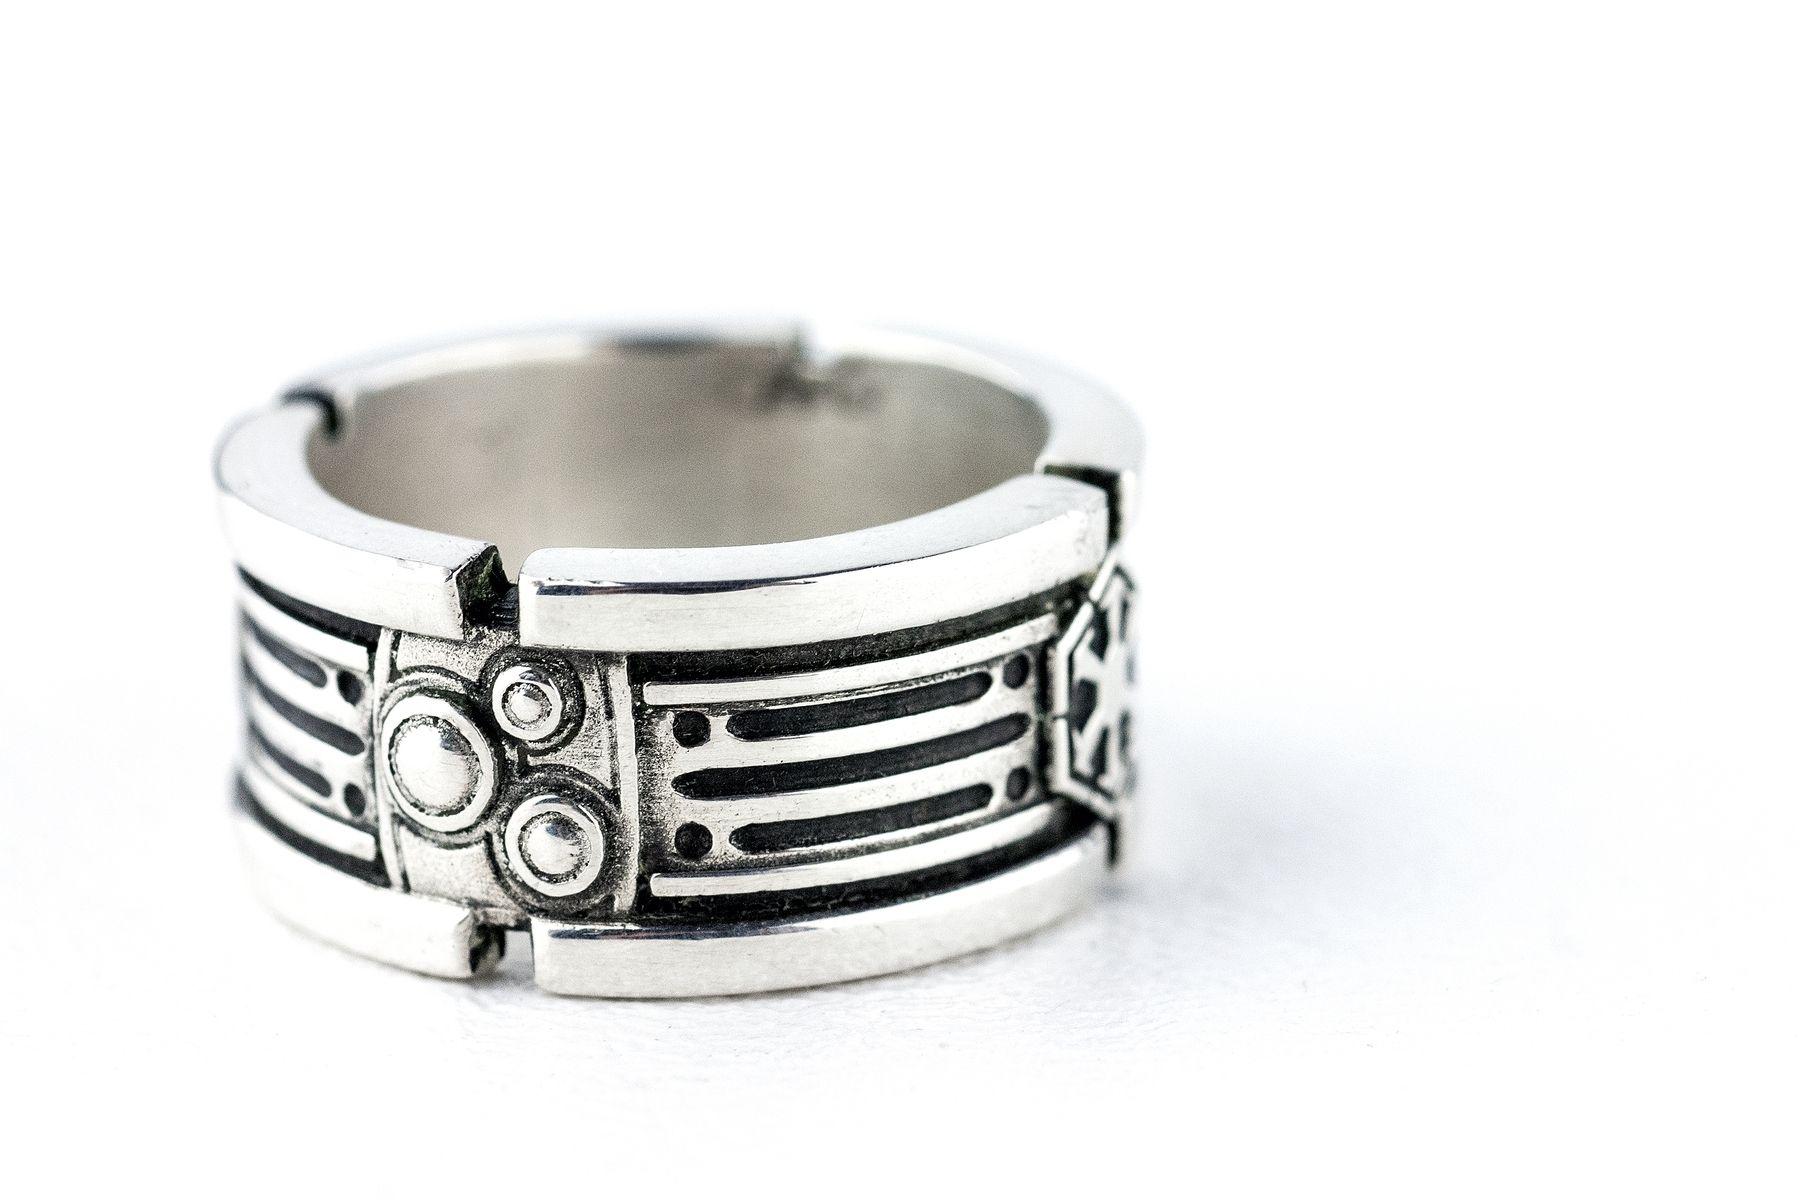 Handmade Star Wars Light Saber Wedding Ring by Rock My World Inc